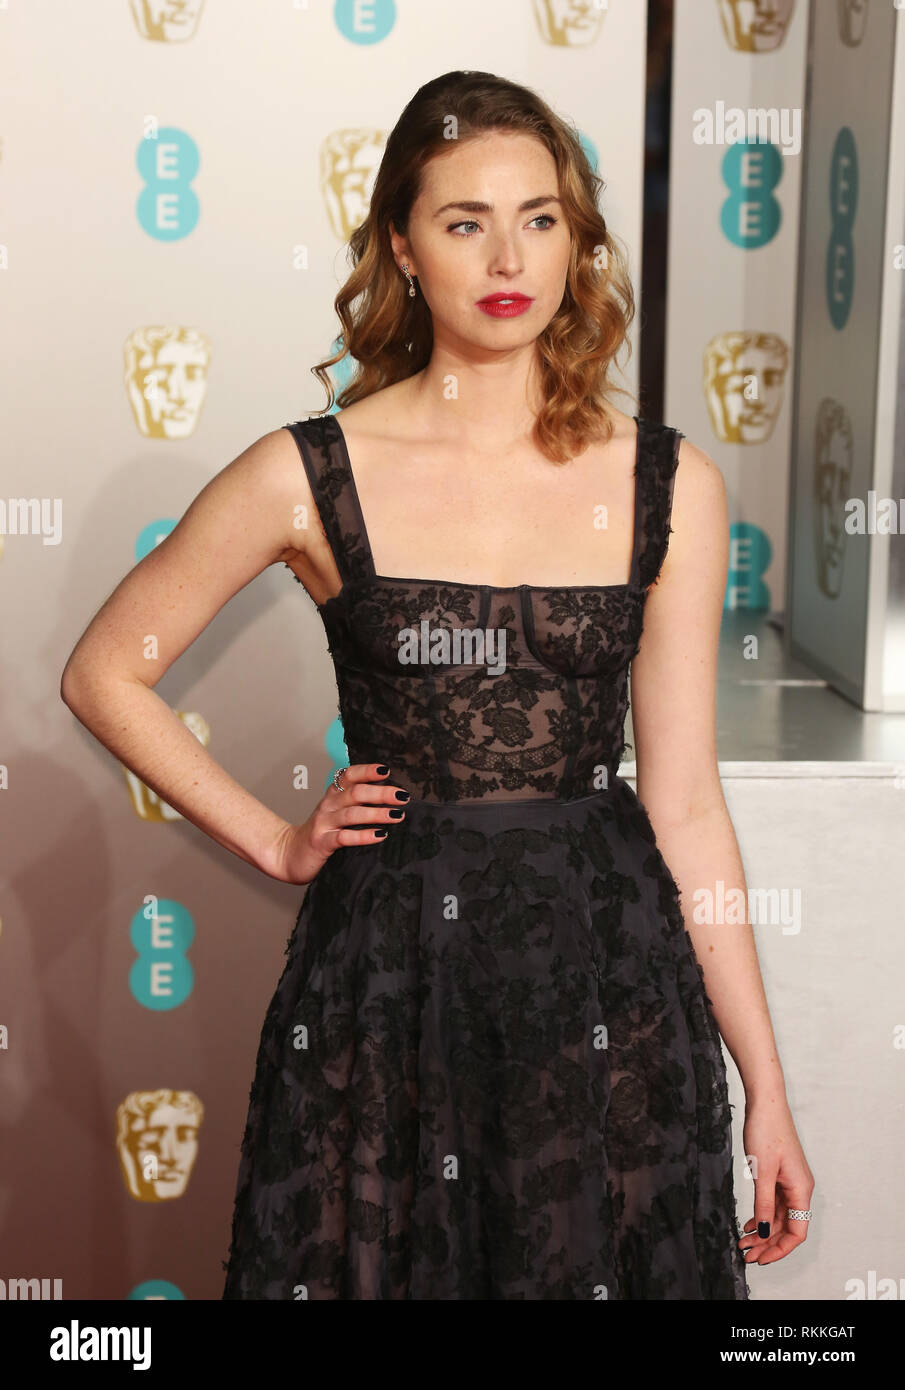 Freya Mavor Seen On The Red Carpet During The British Academy Film Awards 2019 At The Royal Albert Hall In London Stock Photo Alamy